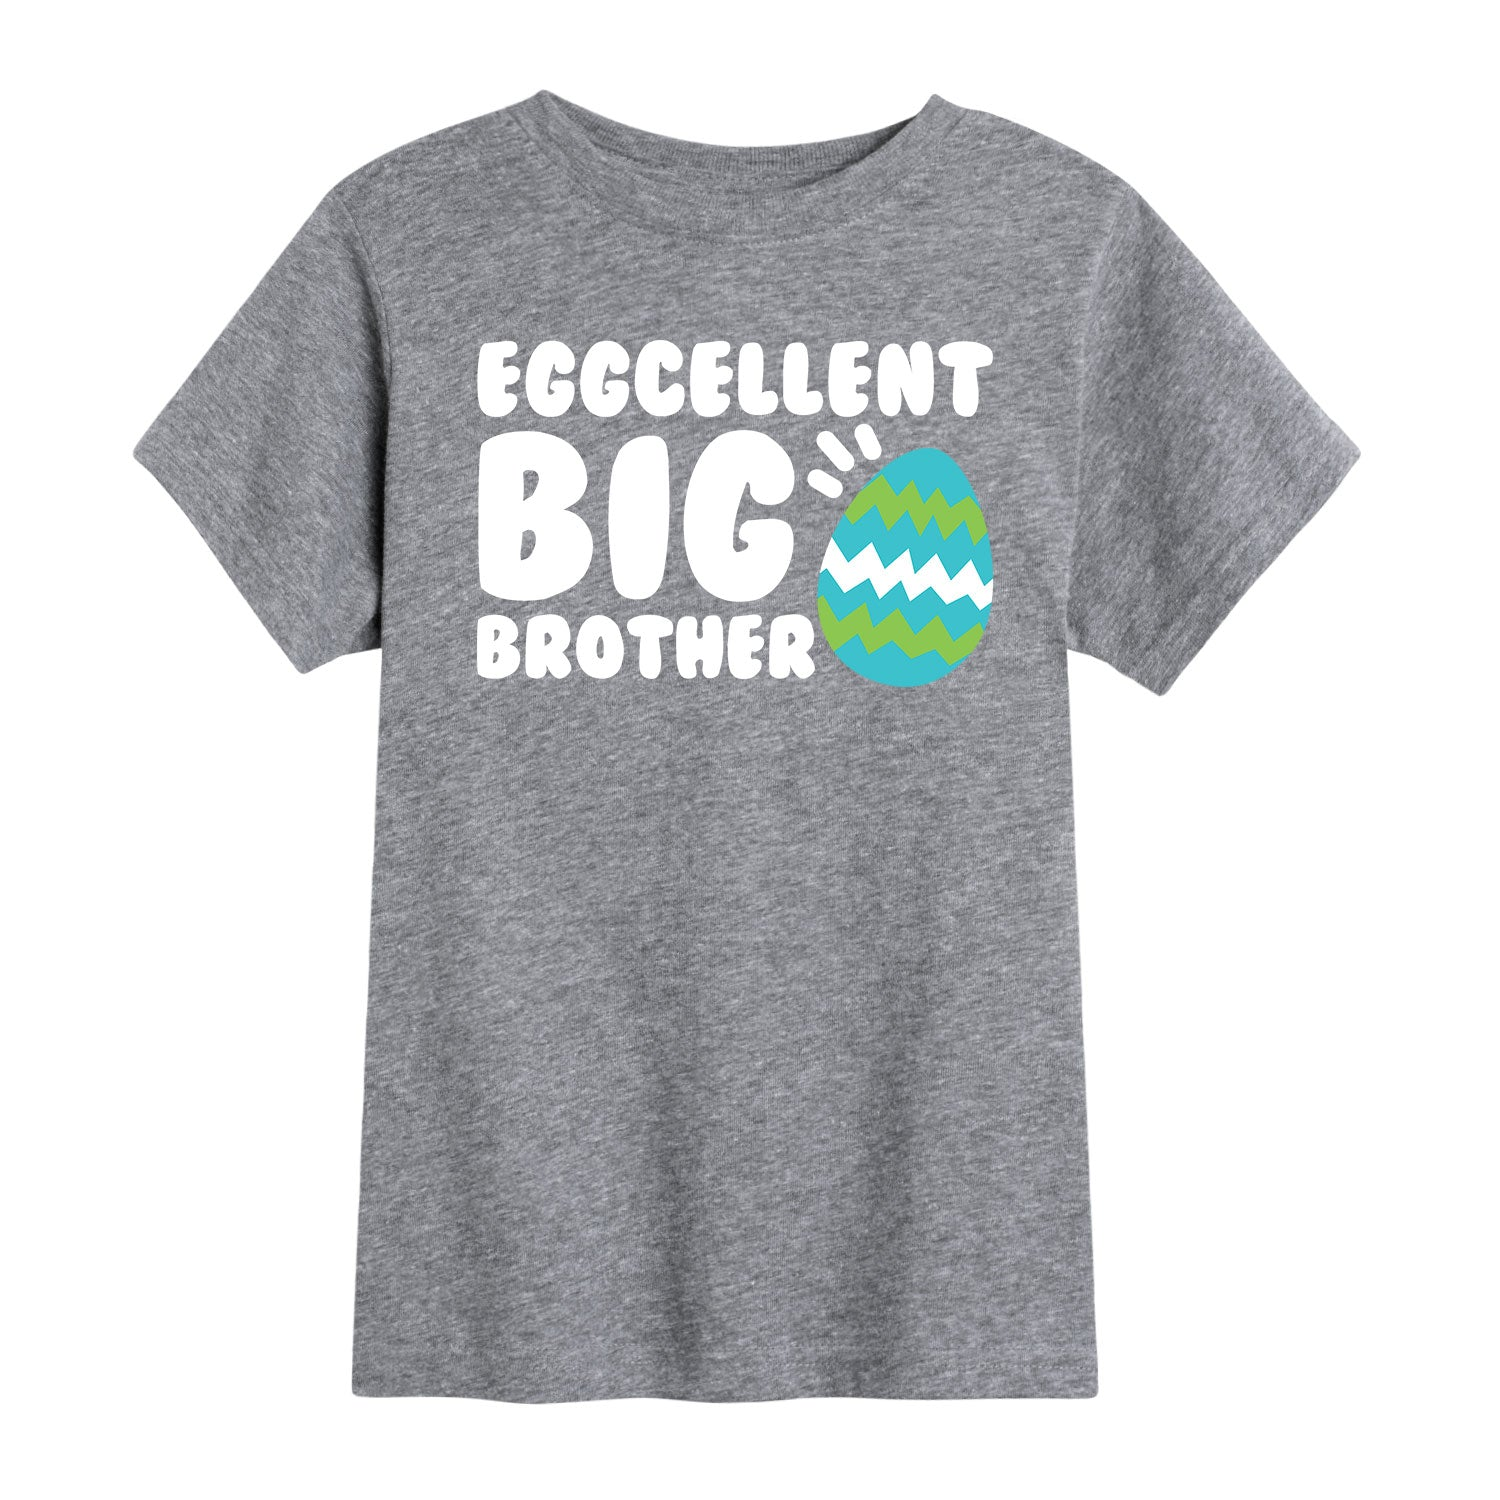 Eggcellent Big Brother - Youth Short Sleeve T-Shirt